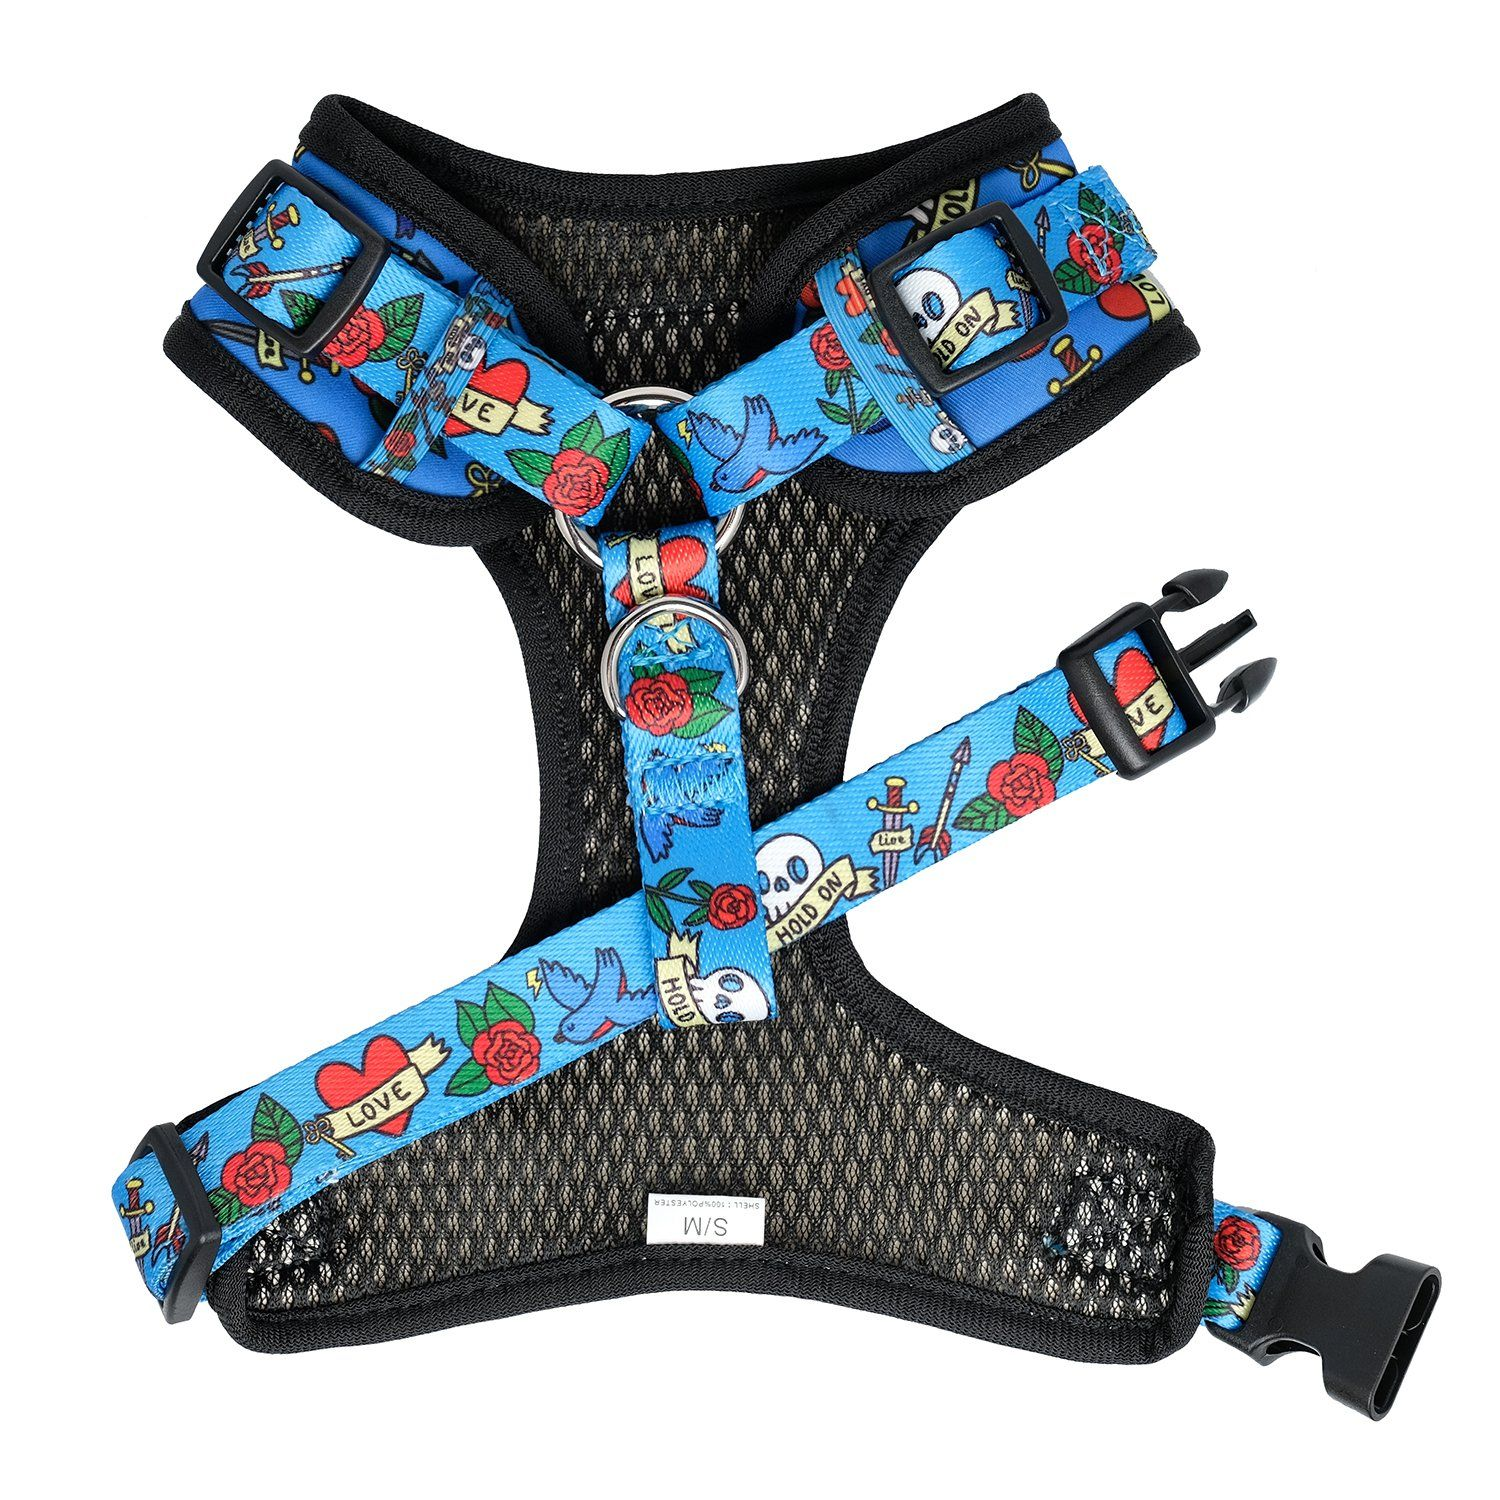 tattoo dog collar and harness, Australian neck adjustable dog harness